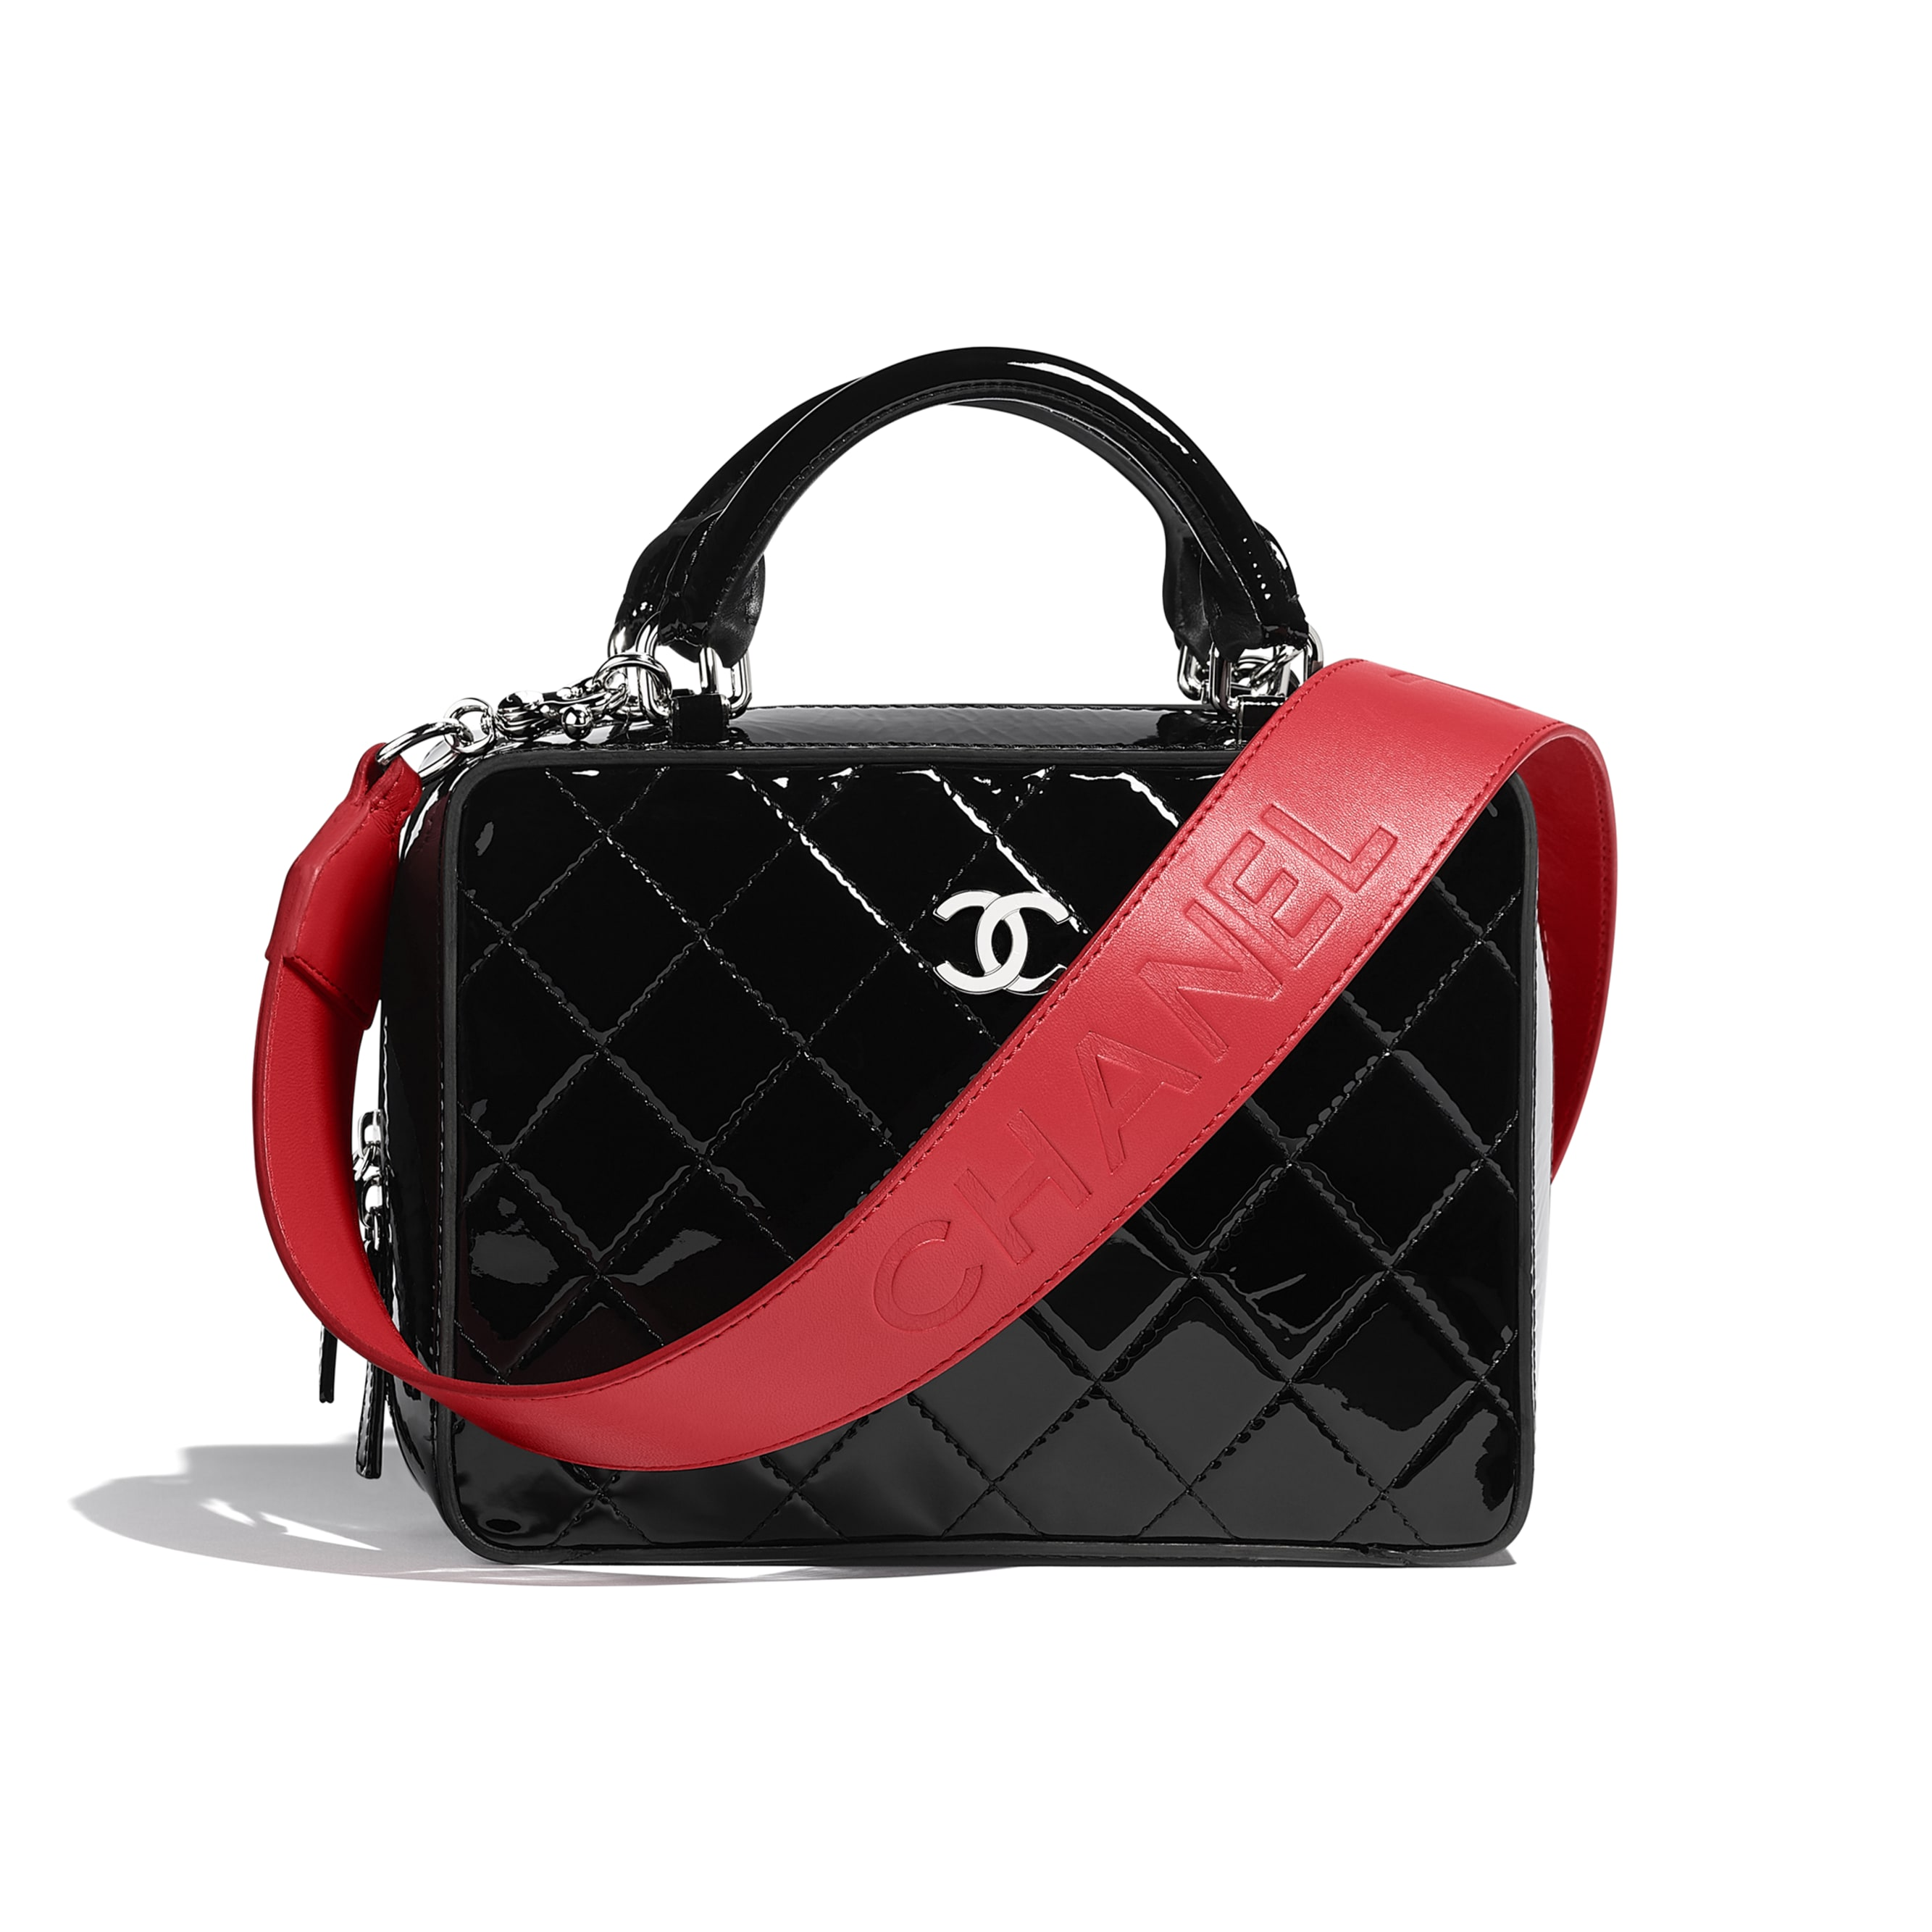 Vanity Case - Black & Red - Patent Calfskin, Calfskin & Silver-Tone Metal - Default view - see standard sized version